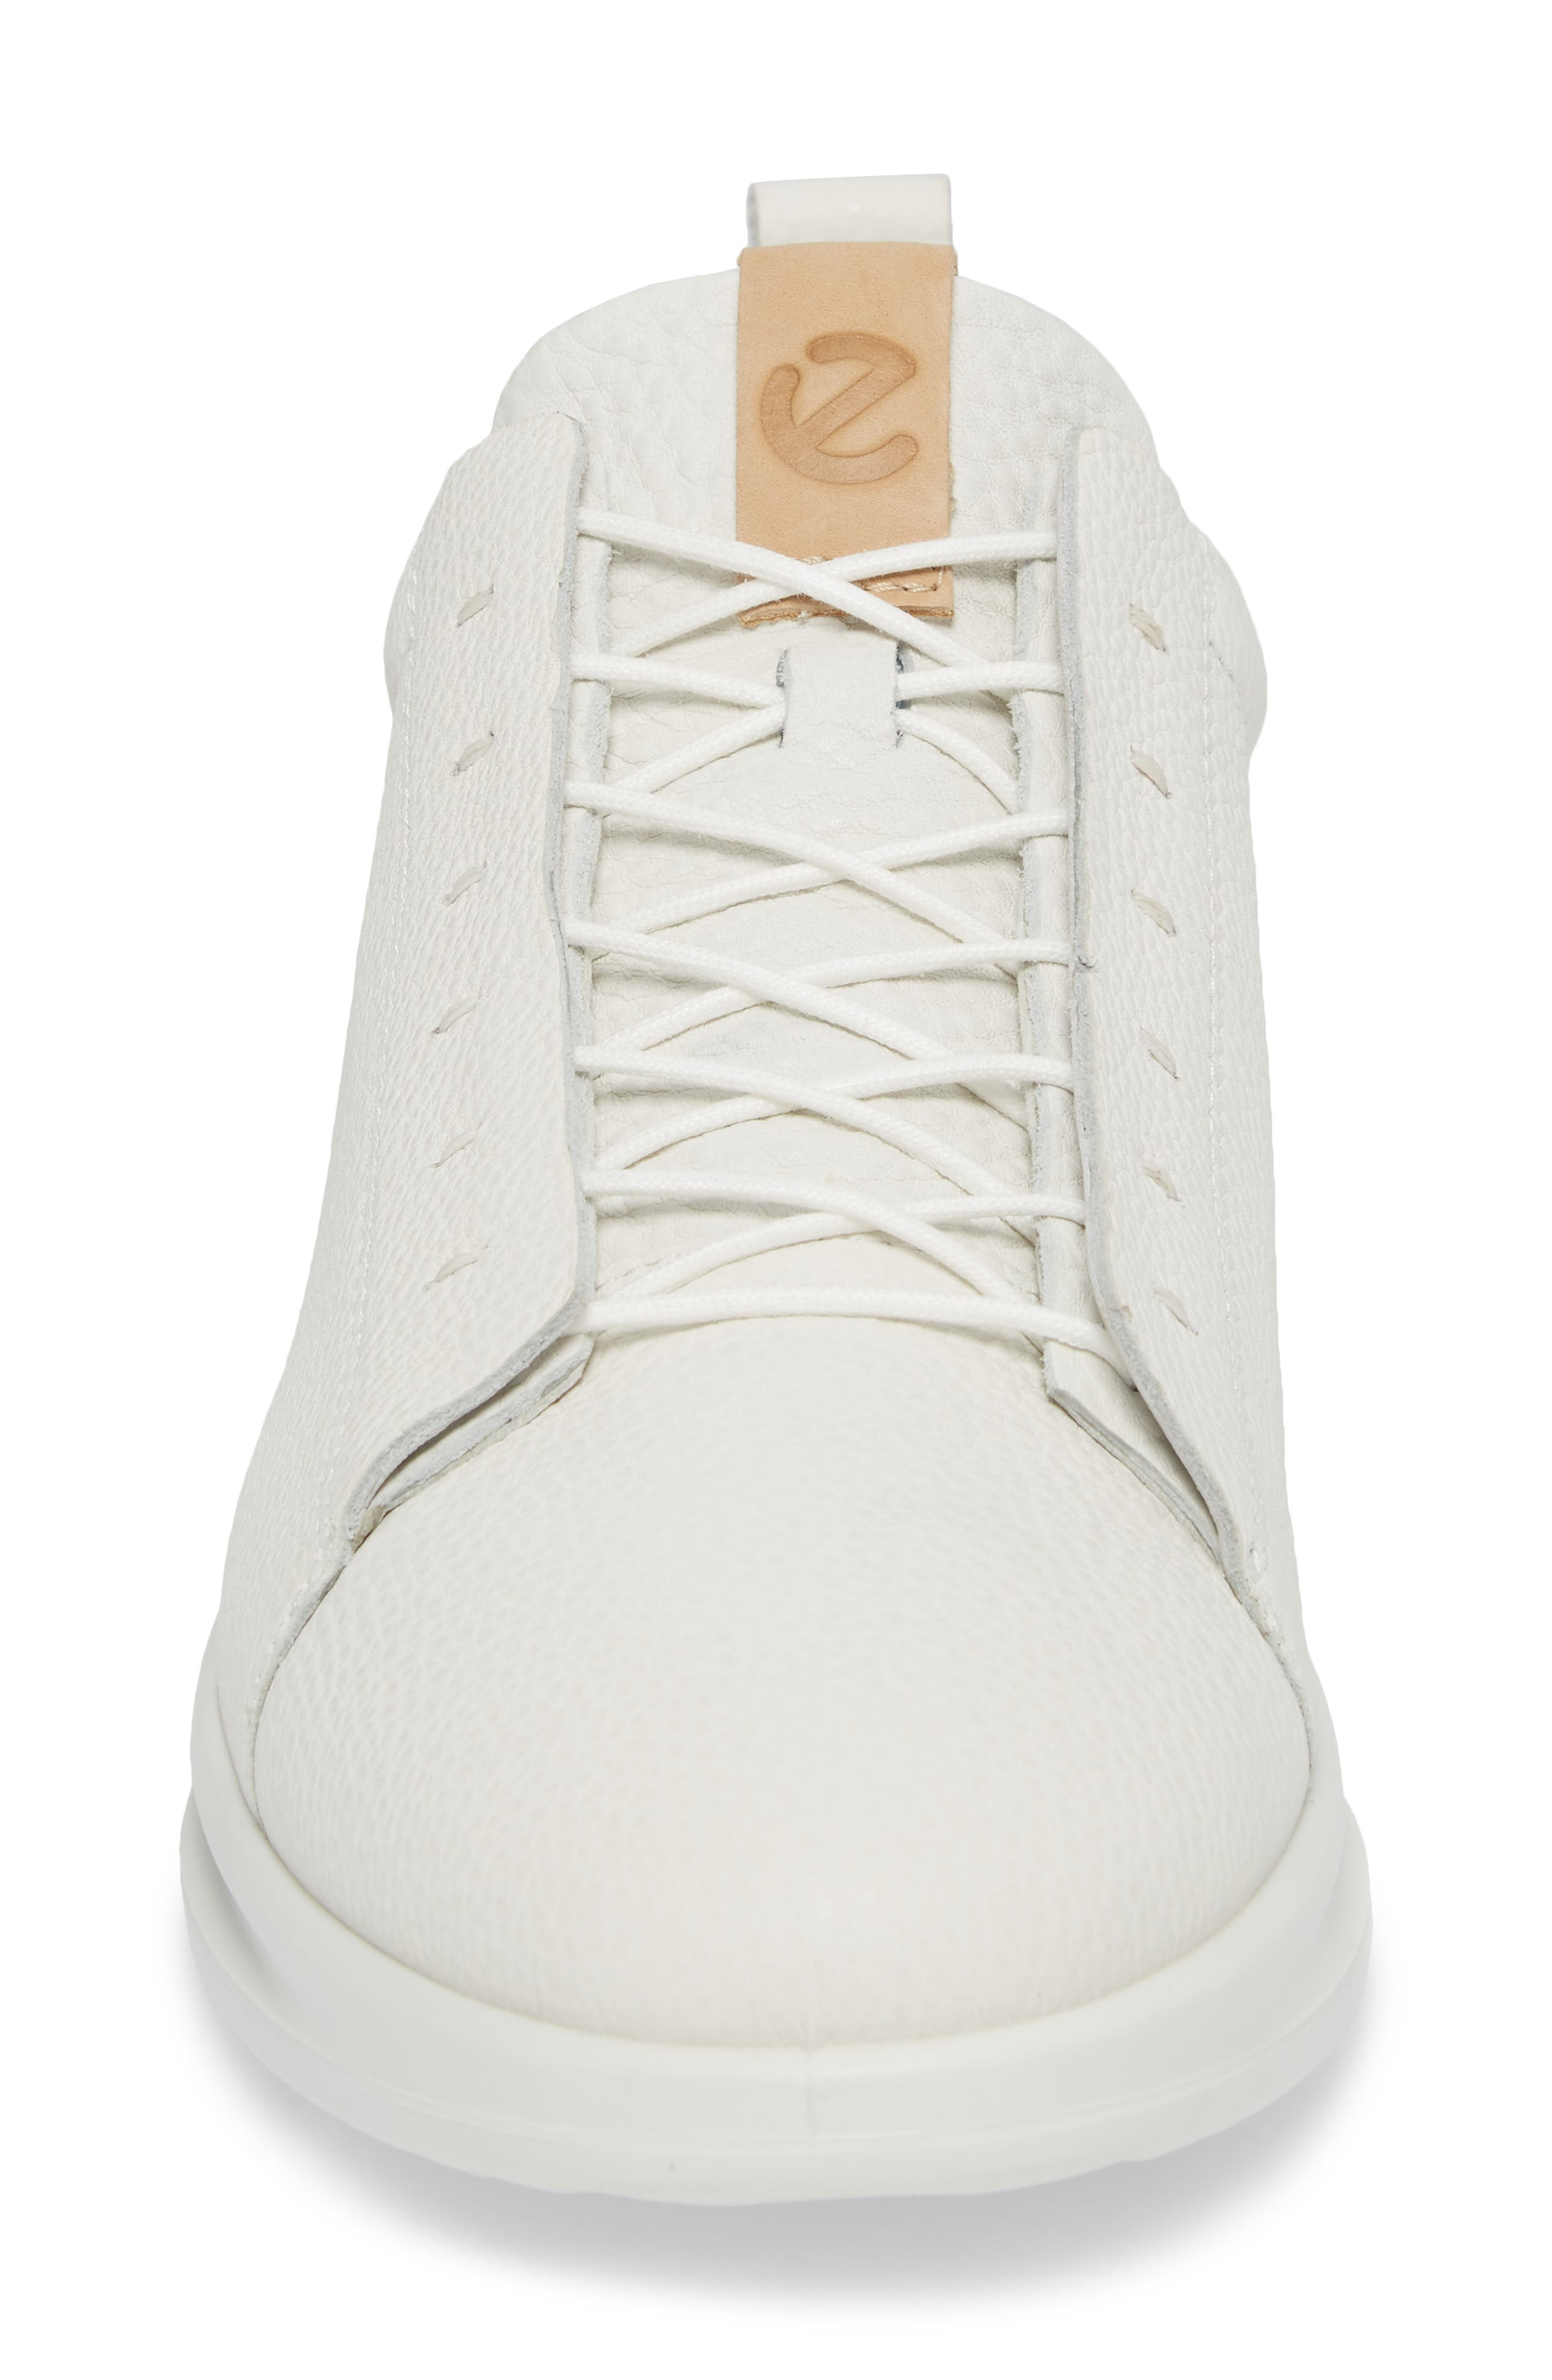 Aquet Low Top Sneaker,                             Alternate thumbnail 4, color,                             100